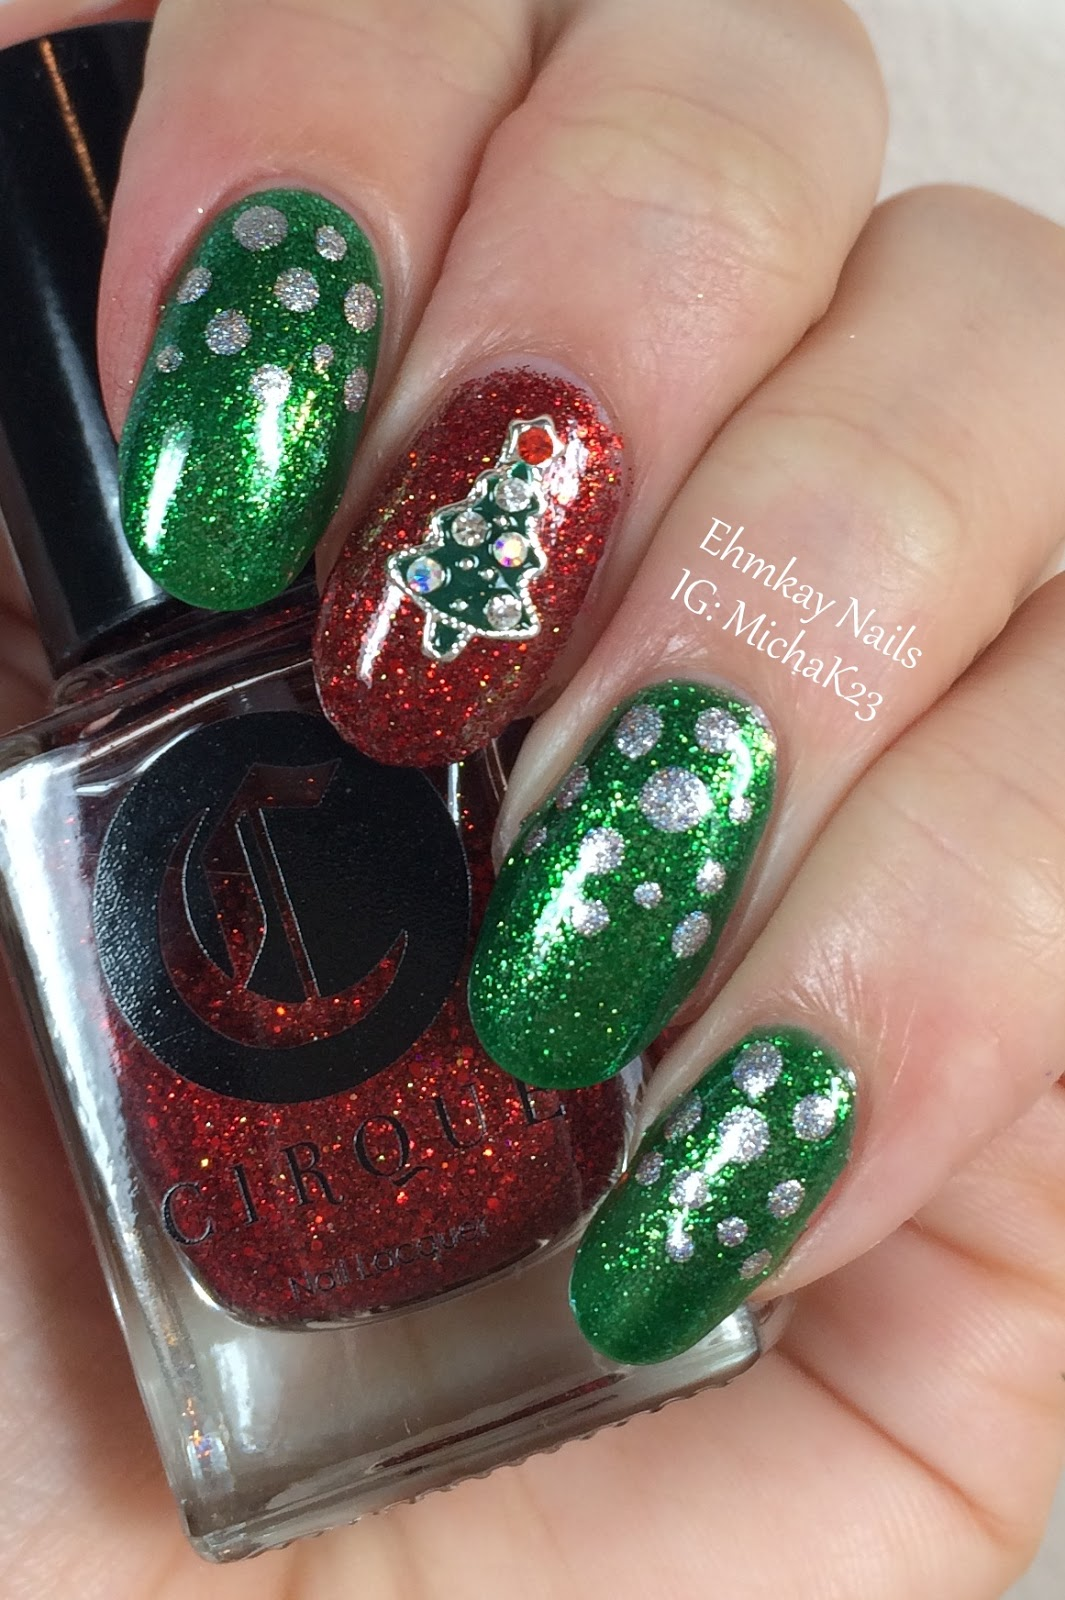 Christmas Nail Art French Manicure Red With White: Ehmkay Nails: Christmas Tree Nail Jewelry And Easy Festive